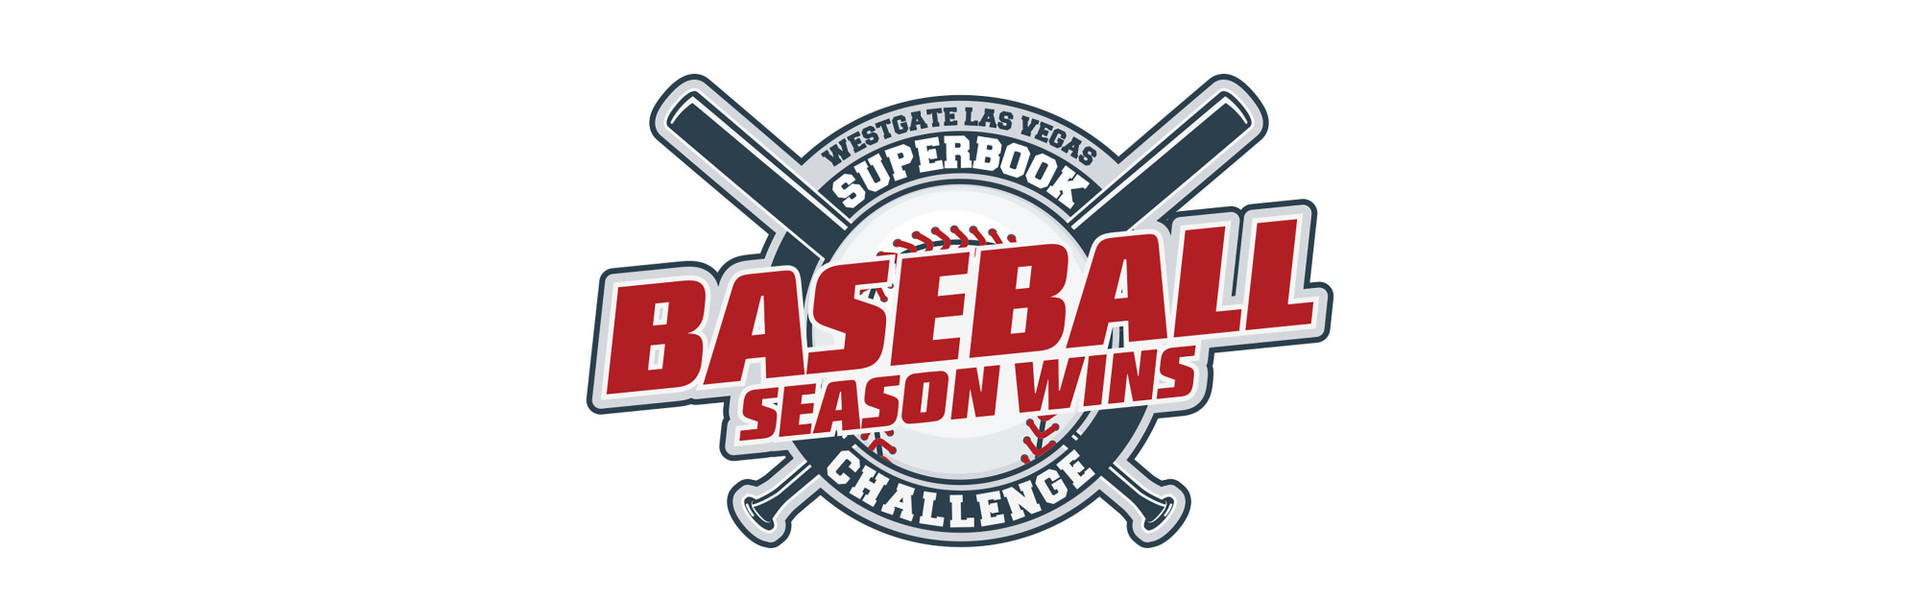 Baseball Challenge at our Las Vegas Hotel and Casino   SuperBook Challenge